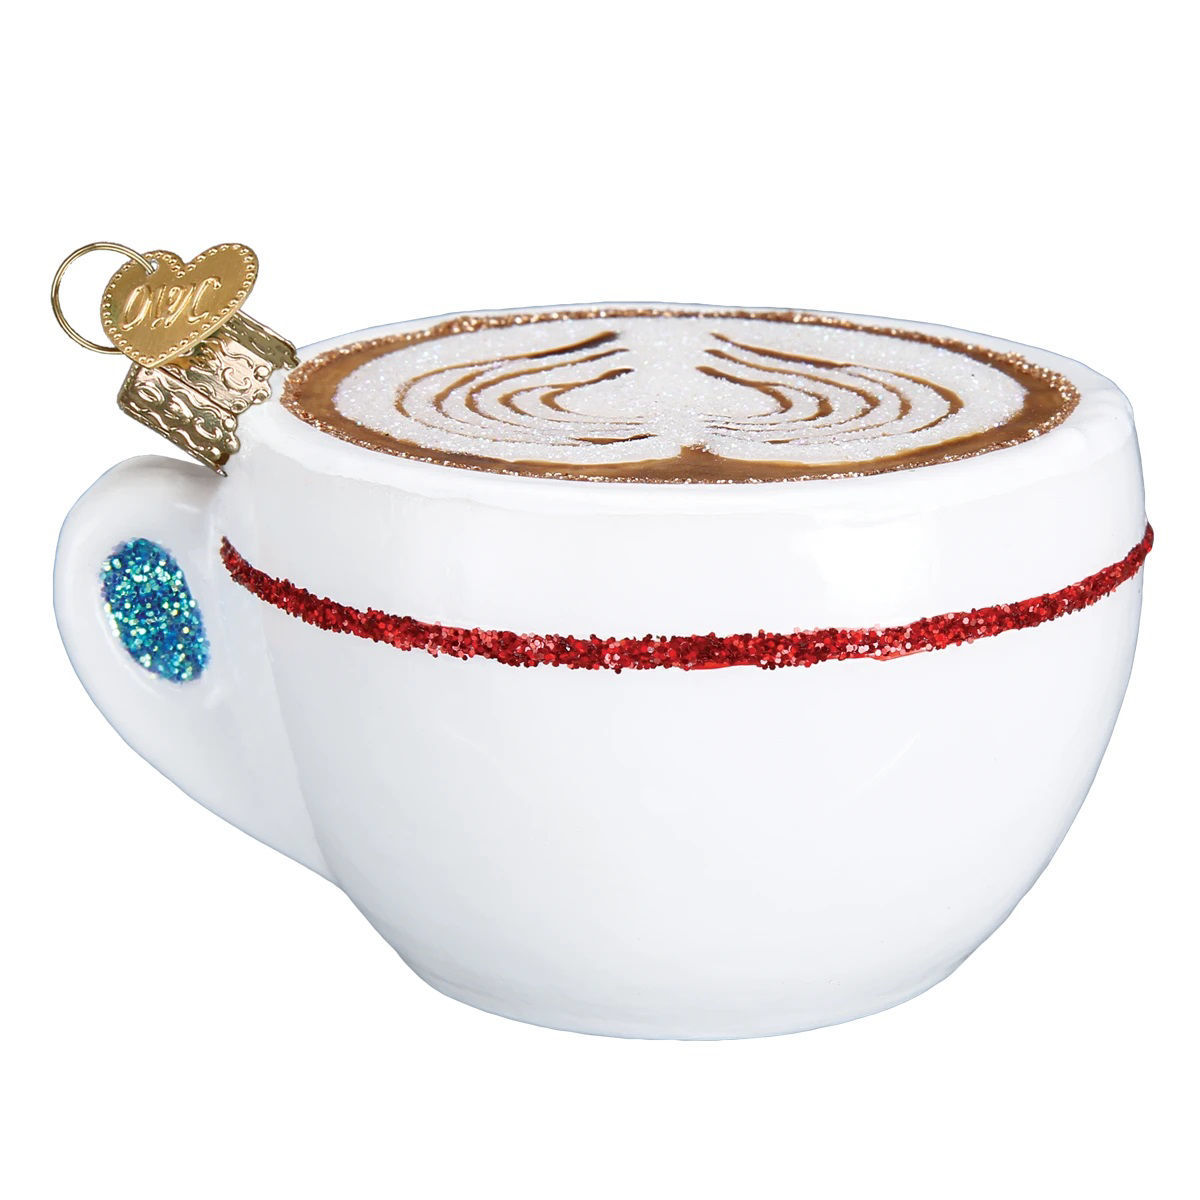 Cappuccino Ornament by Old World Christmas